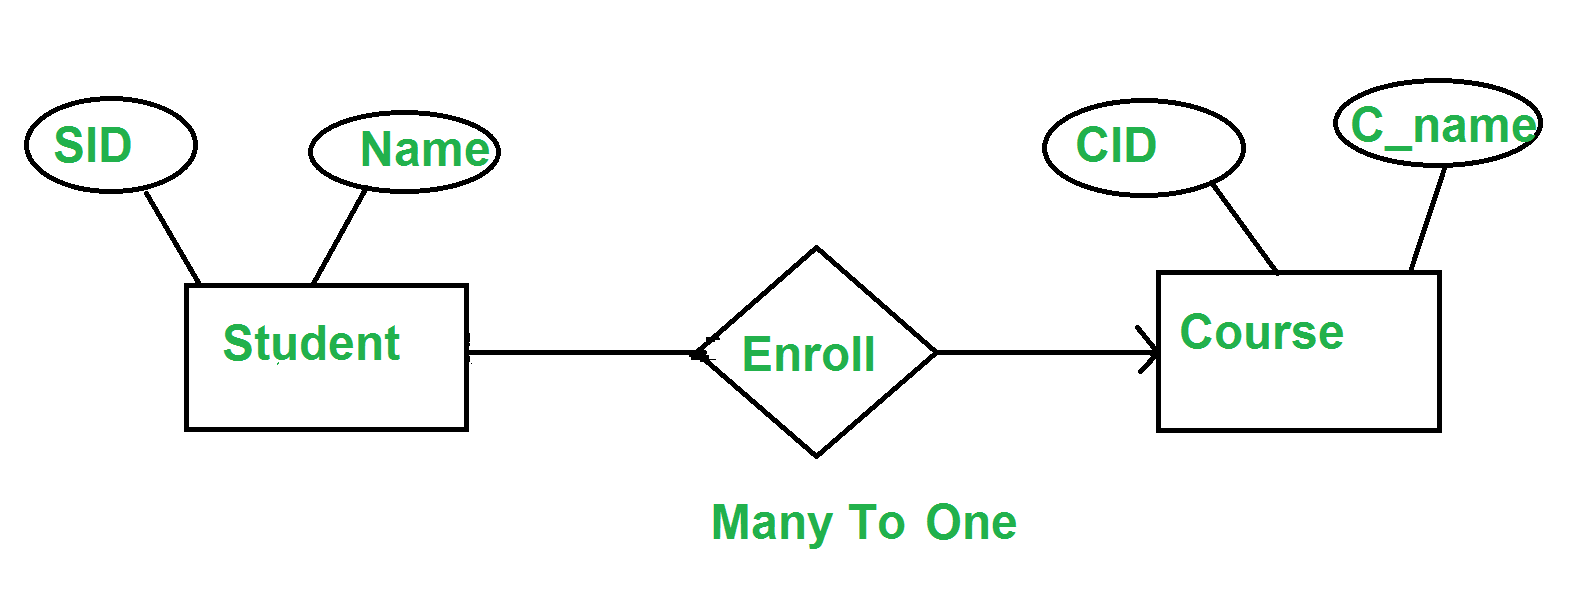 How To Show Many To Many Relationship In Er Diagram